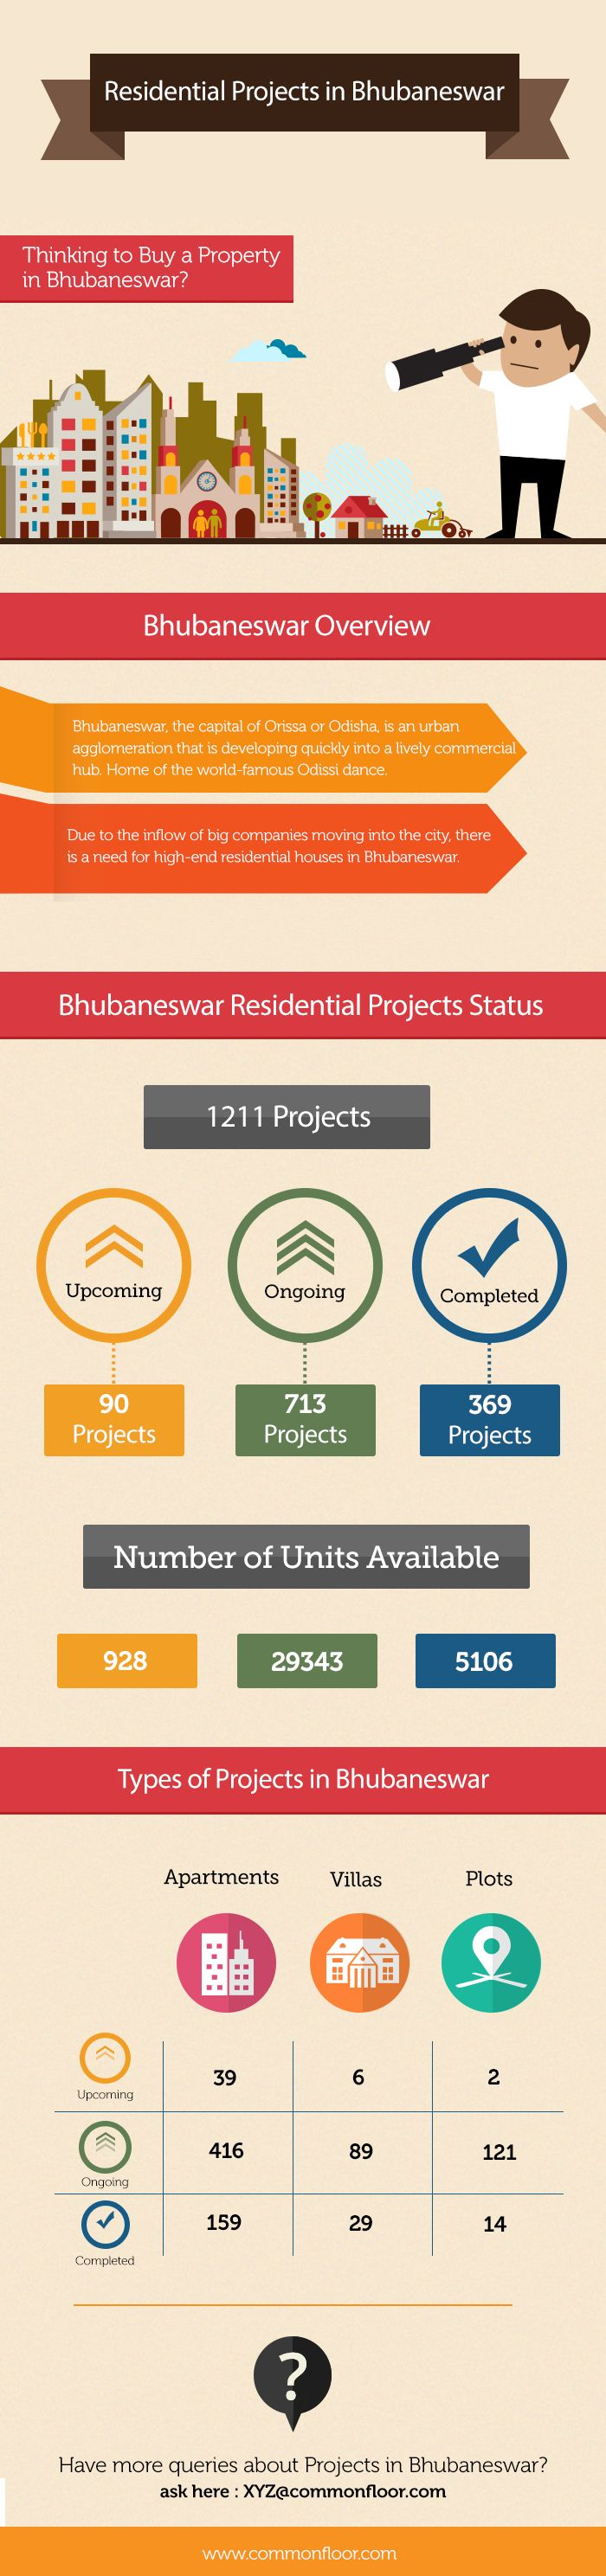 Bhubaneswar,the capital of Odisha,is an urban agglomeration that is developing quickly into a lively commercial hub.There are 1211 projects in Bhubaneswar, out of which 90 are in upcoming,713 ongoing stage, 369 are ready to occupy projects.The total number of units available in Bhubaneswar are 35377, out of which 928 are in upcoming, 29343 in ongoing stage, 5106 have been completed.For more information on Residential Projects in Bhubaneswar visit…